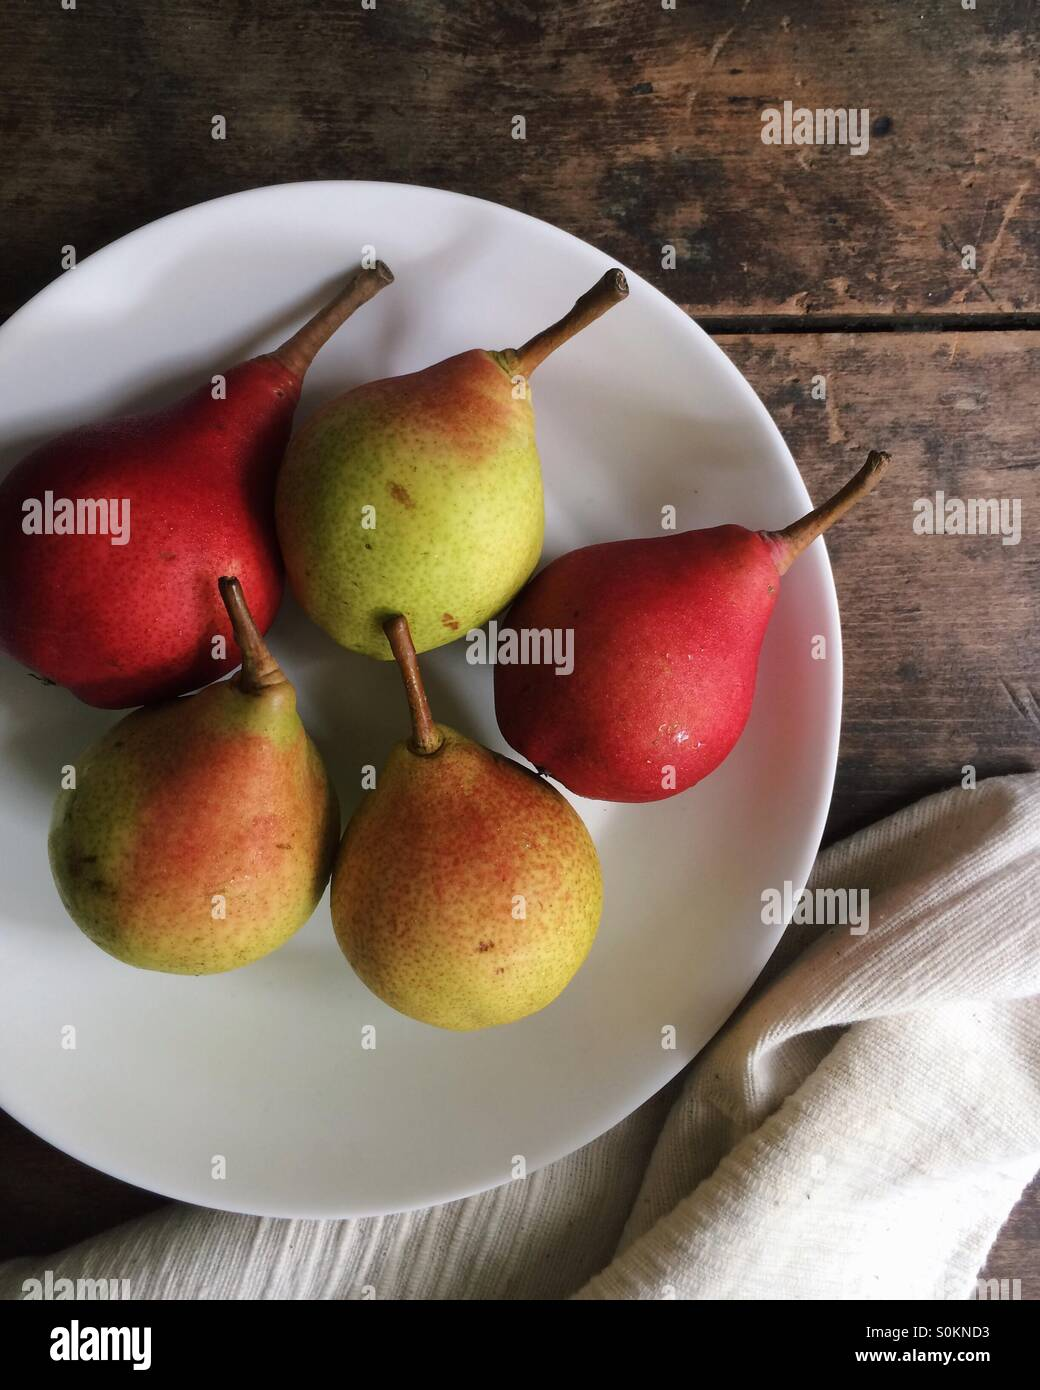 Fall pears. - Stock Image